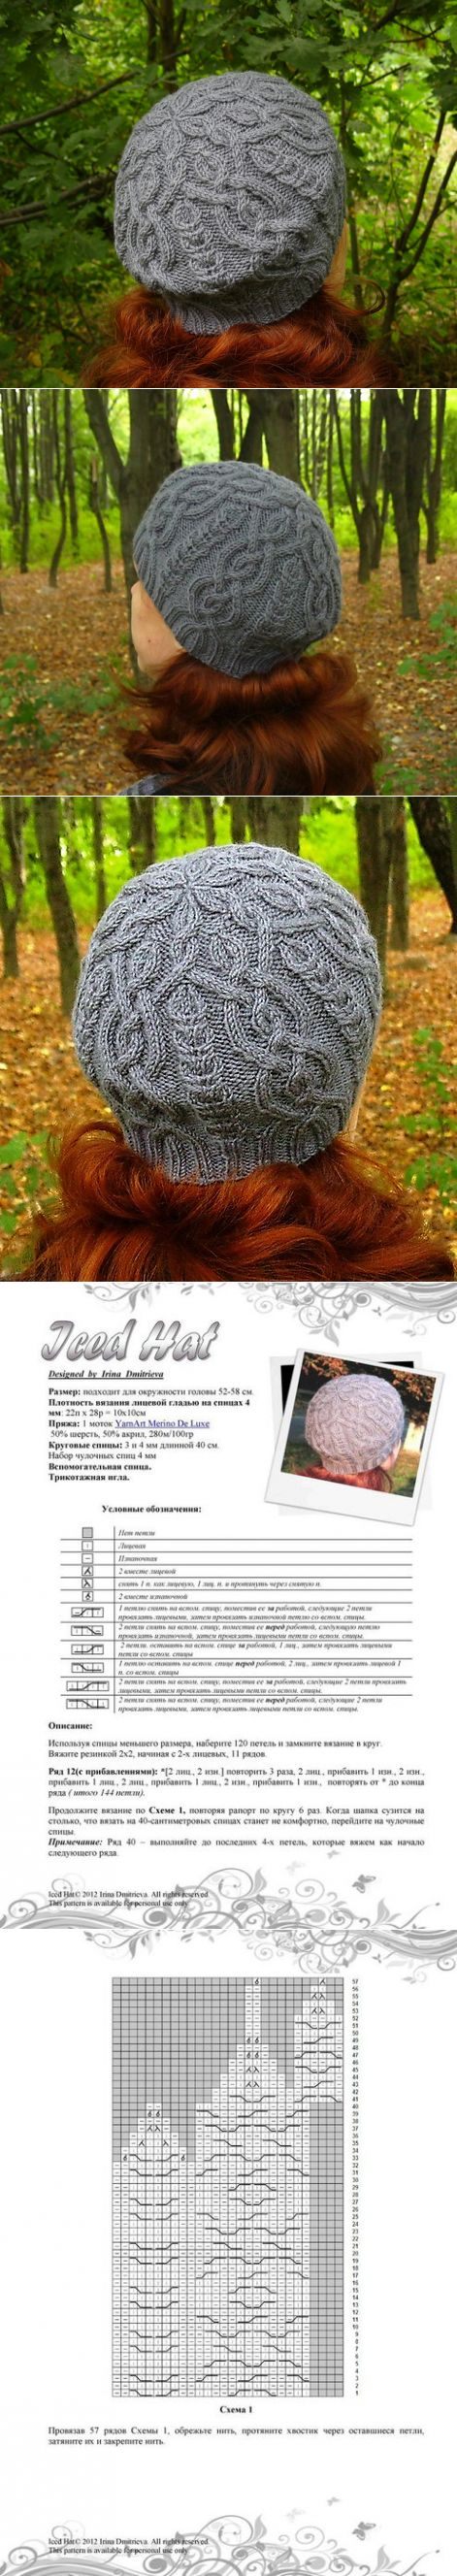 Hood Iced  Hat pattern by Irina Dmitrieva